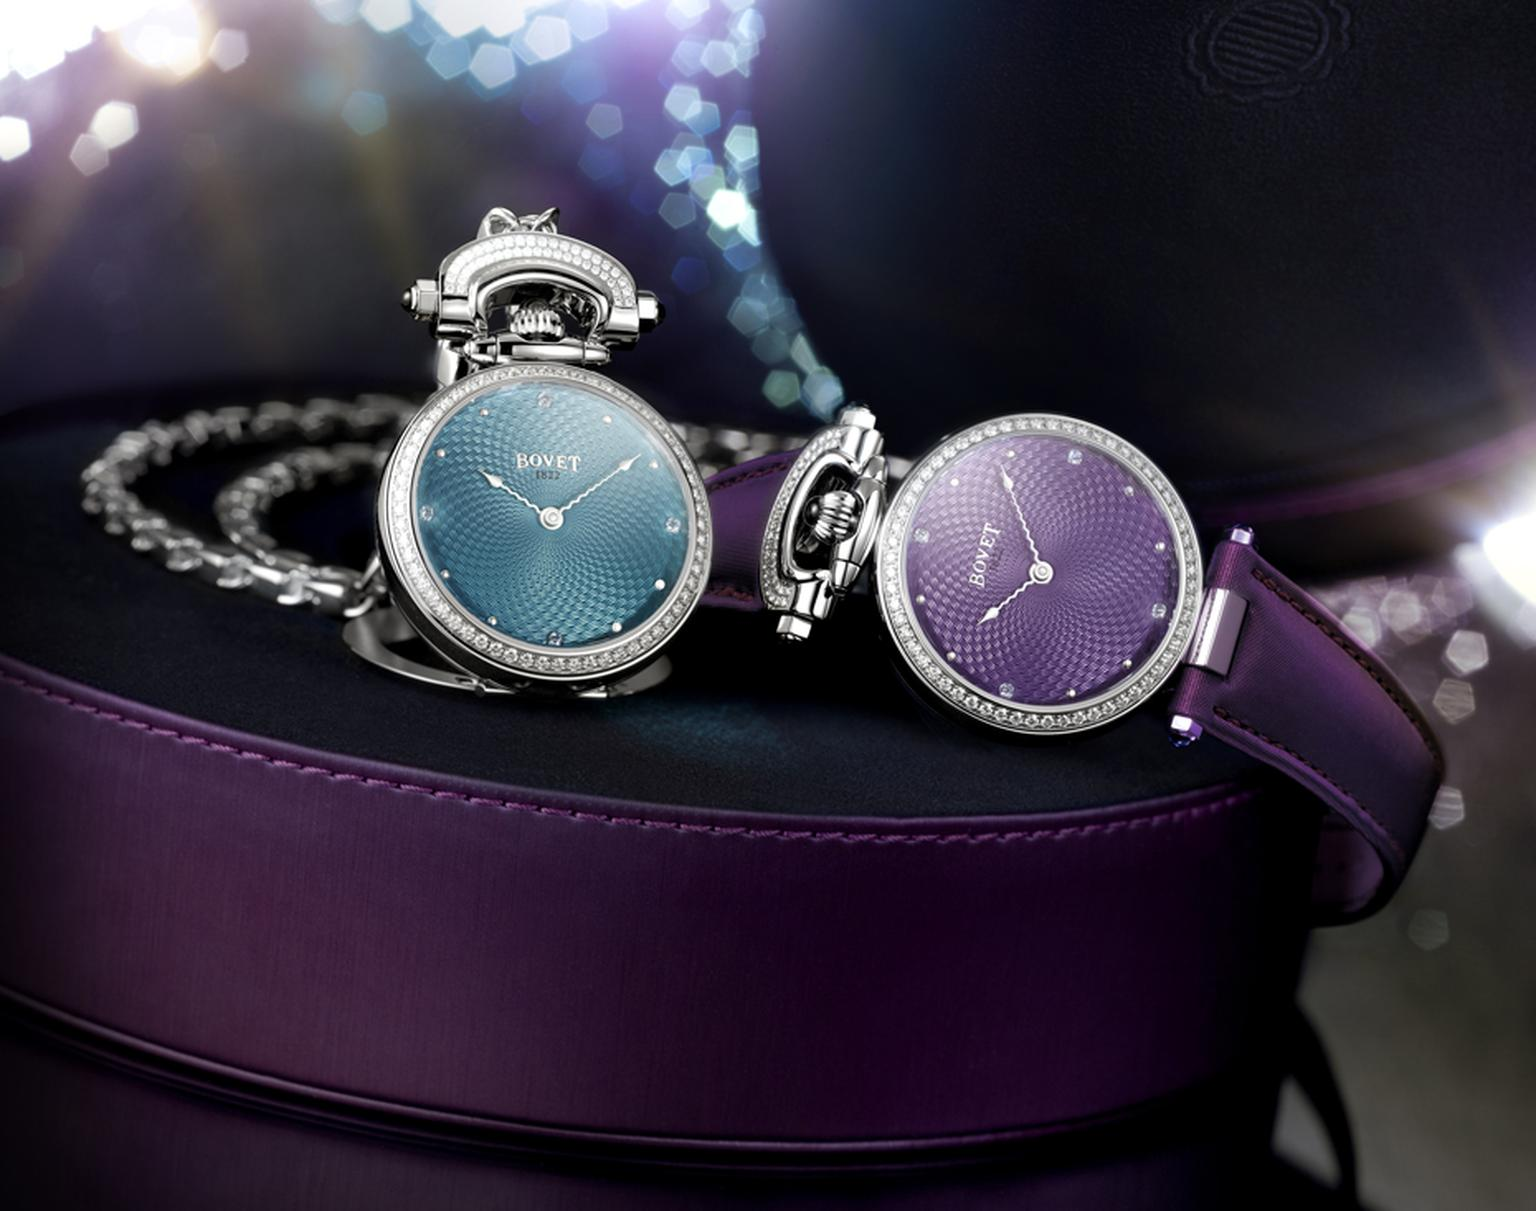 Bovet's Amadeo Fleurier 36 Miss Audrey watches, with their magnificent guilloché lacquered dials, are the lightest in the Fleurier collection, which allows them to be worn comfortably as a pendant.